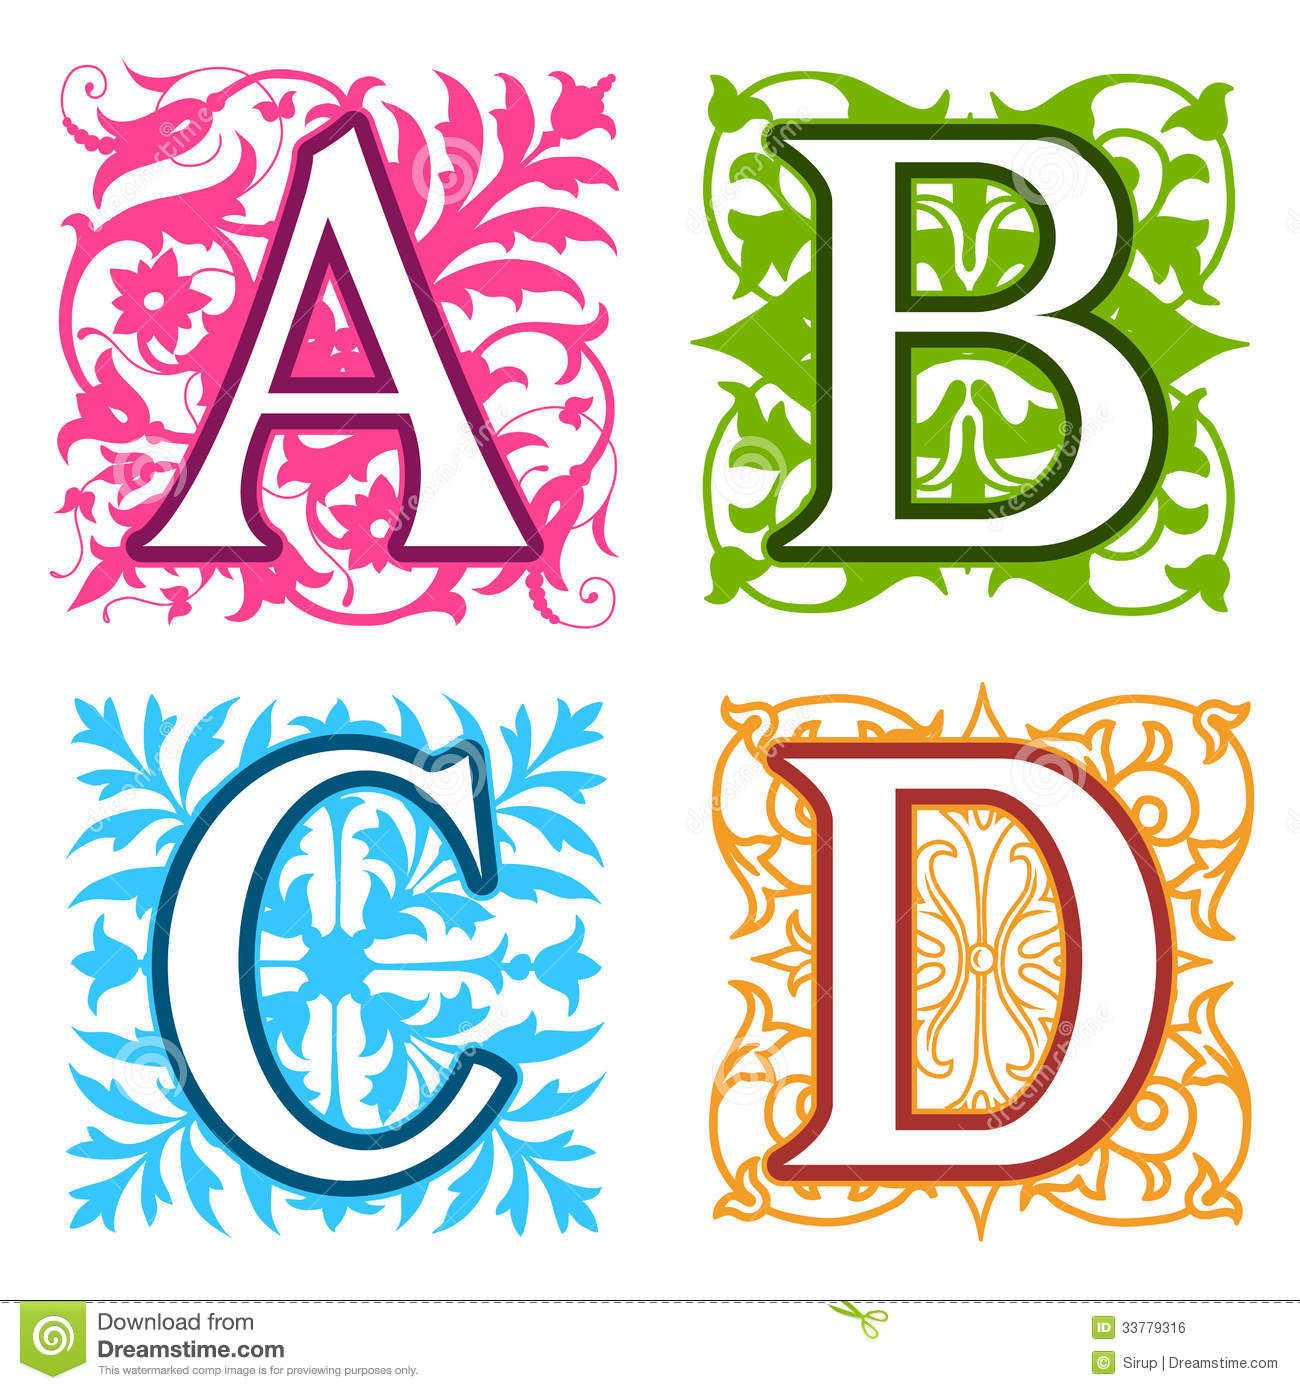 Worksheets Alphabet  Letter a b c d alphabet letters floral elements royalty free stock stock